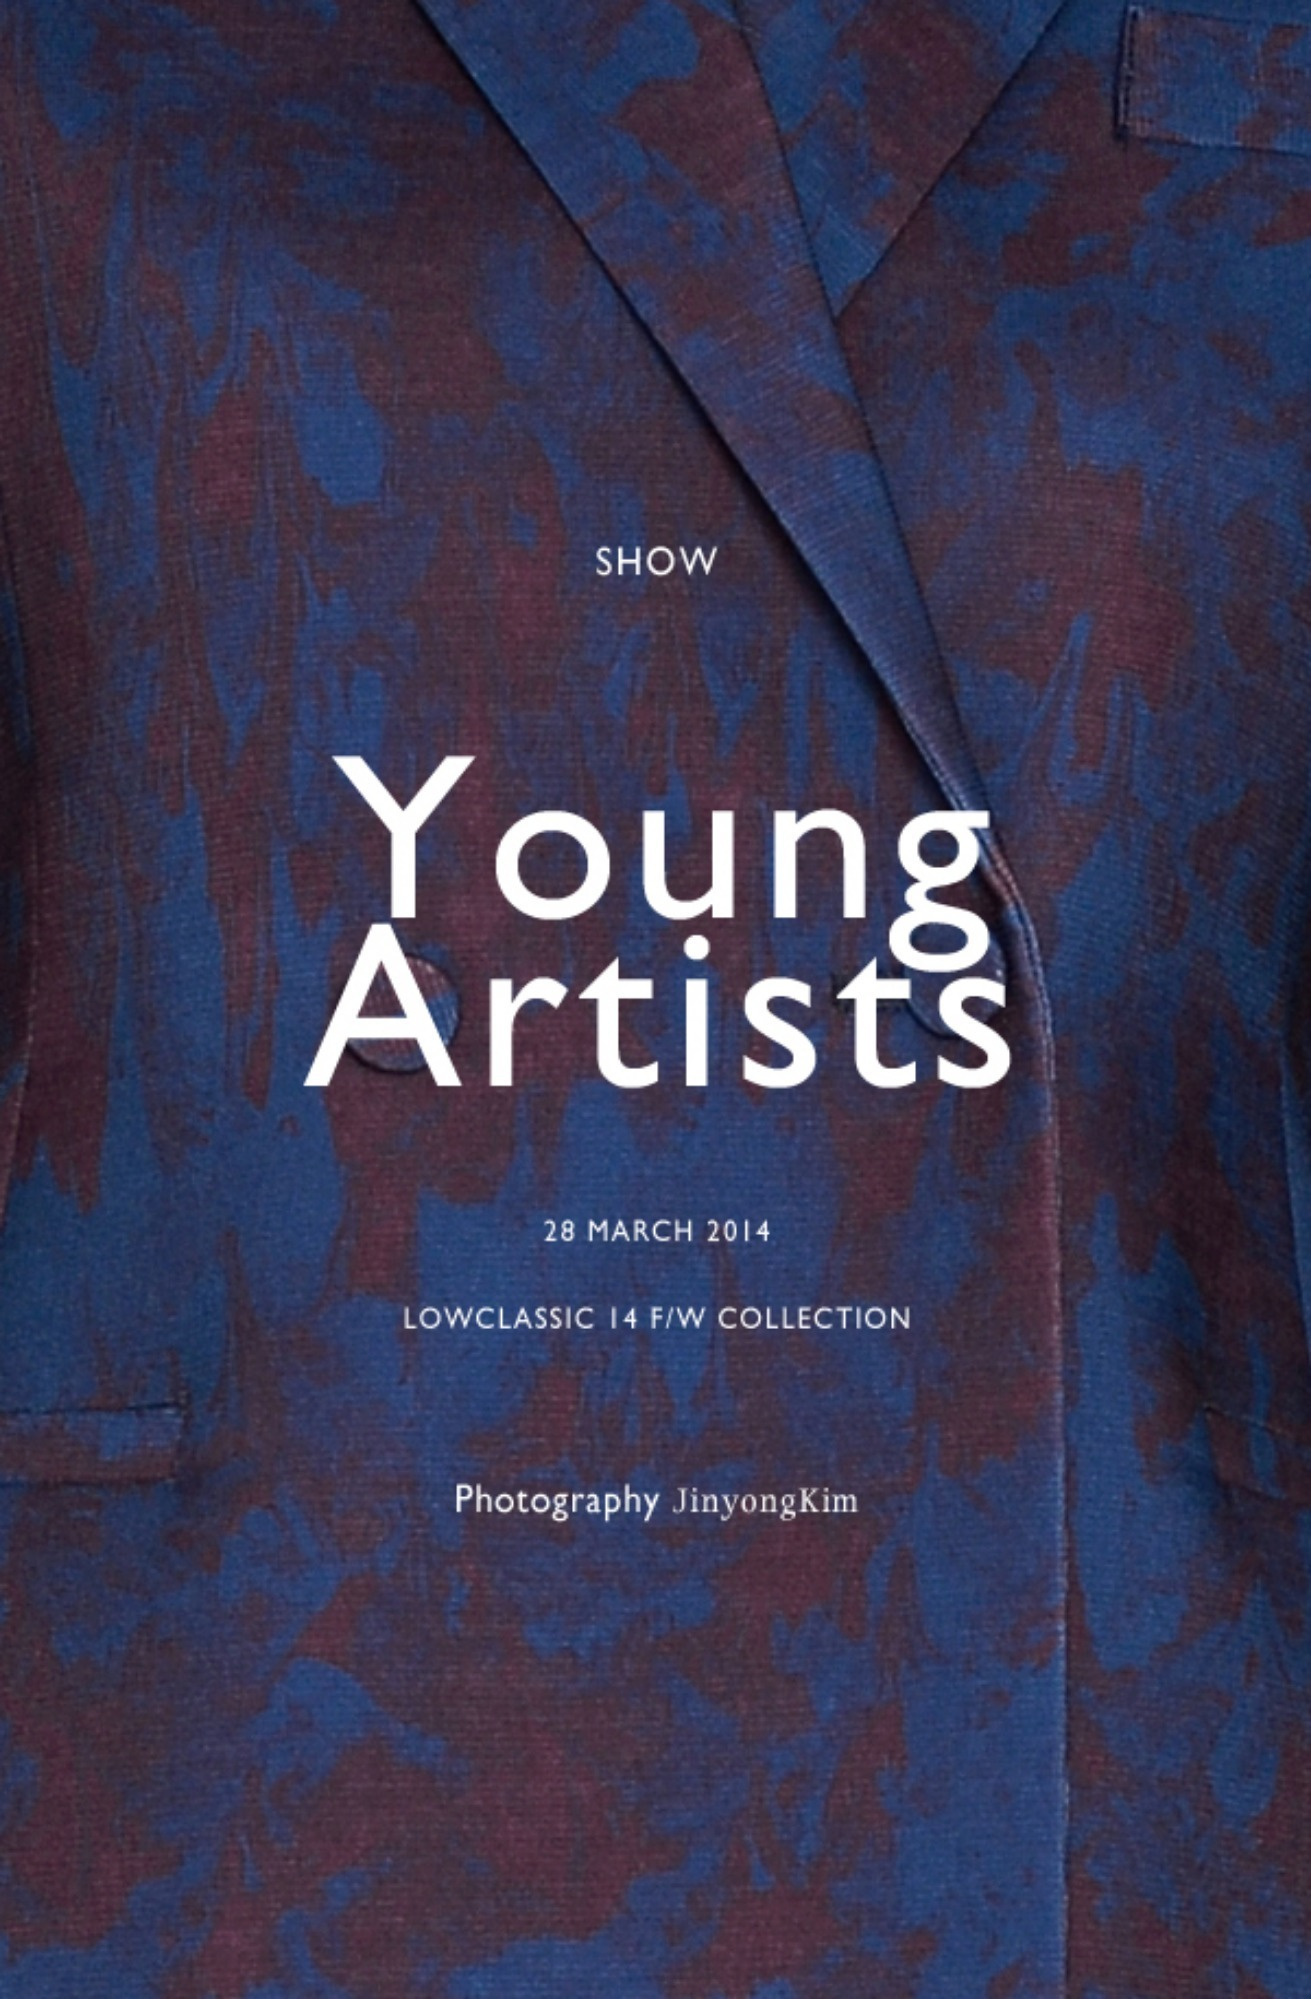 14FW Collection LOW CLASSIC 'Young Artists'